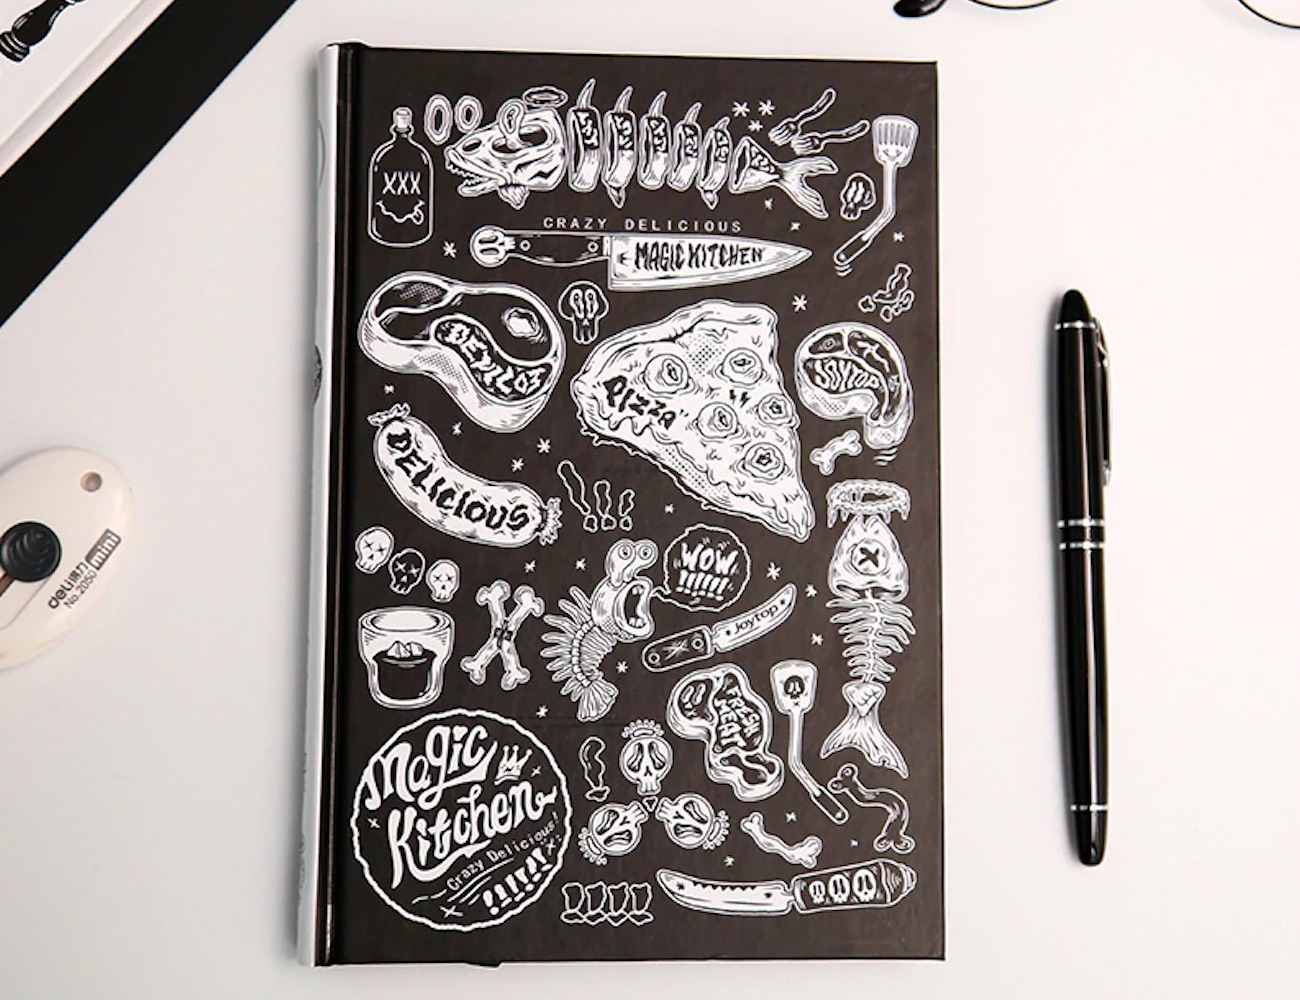 Graffiti Artwork Hardcover Notebook will inspire you to create